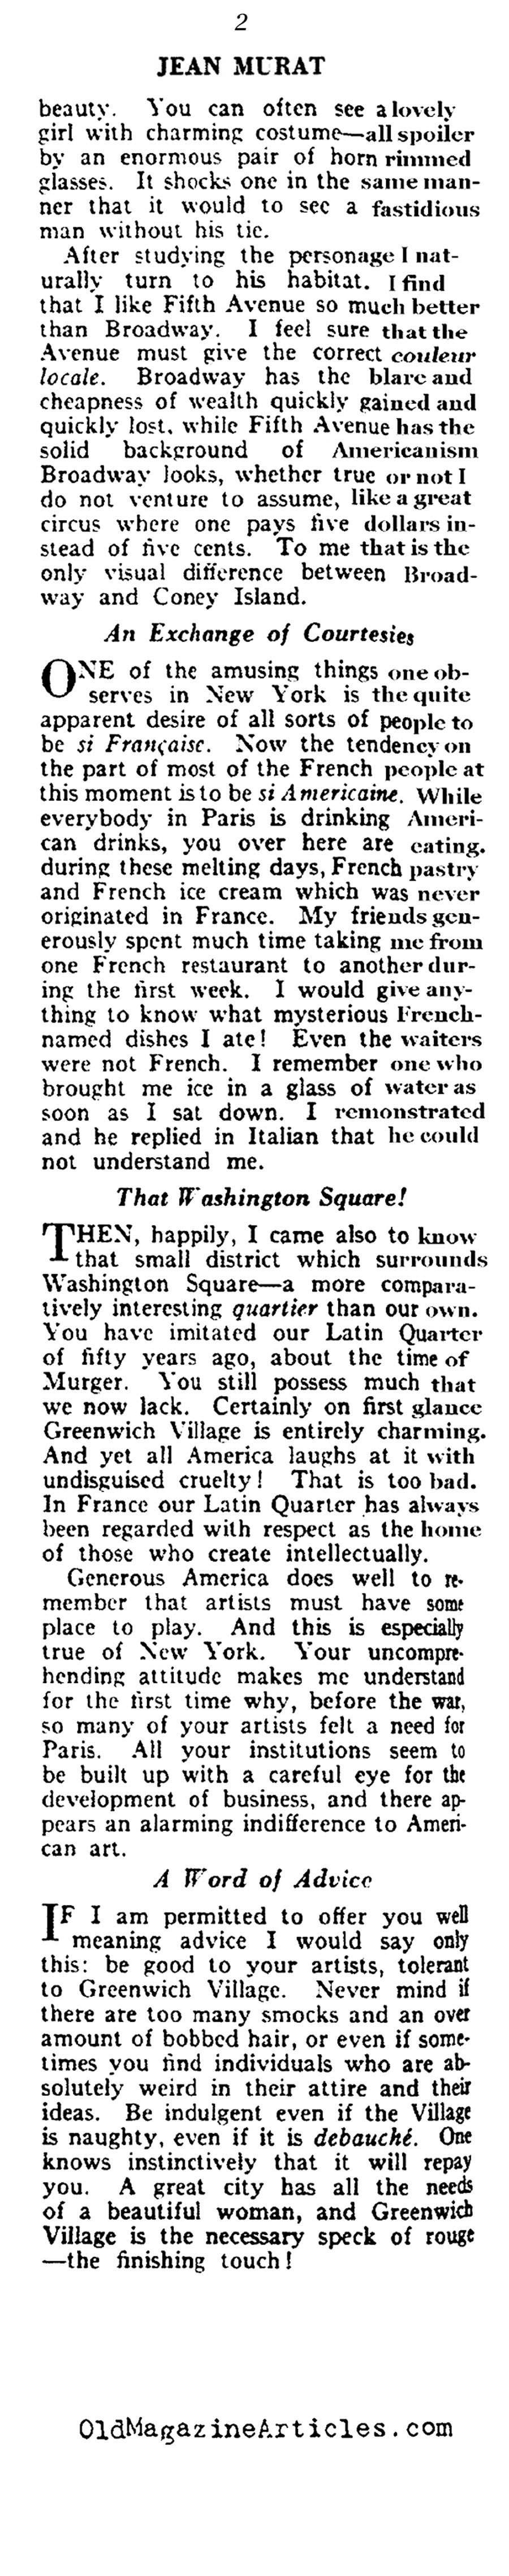 A Frenchman Looks at New York (Vanity Fair Magazine, 1919)